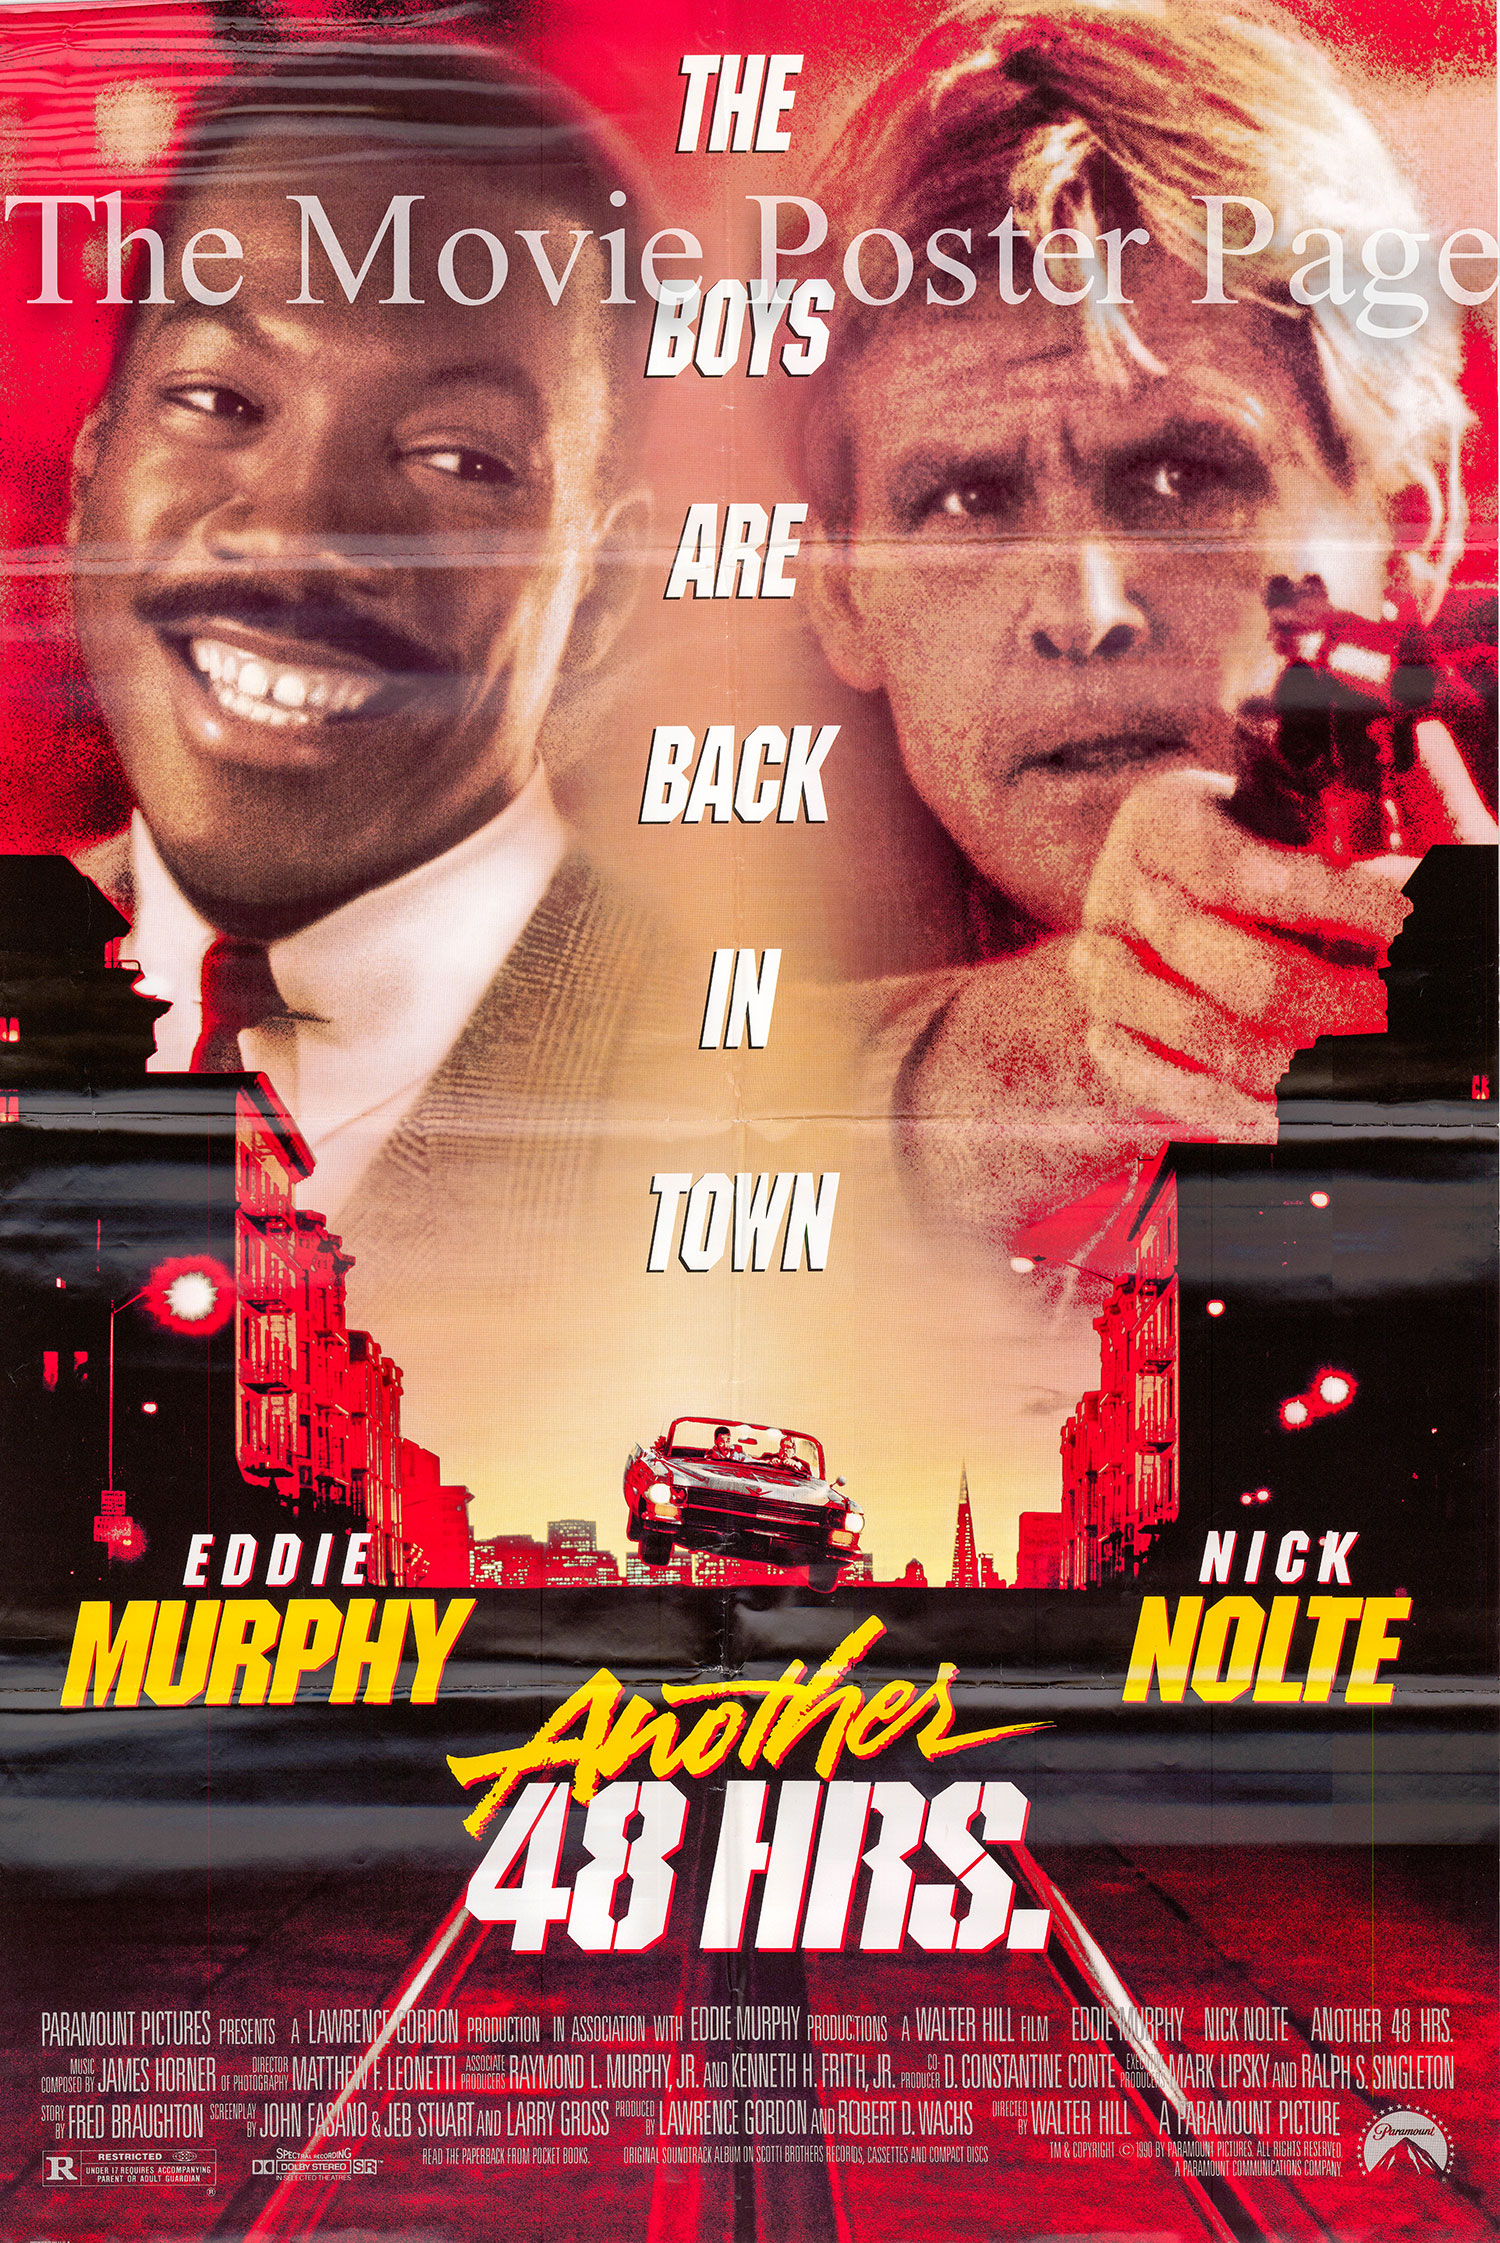 Pictured is a US promotional one-sheet poster for the 1990 Walter Hill film Another 48 Hours starring Eddie Murphy.